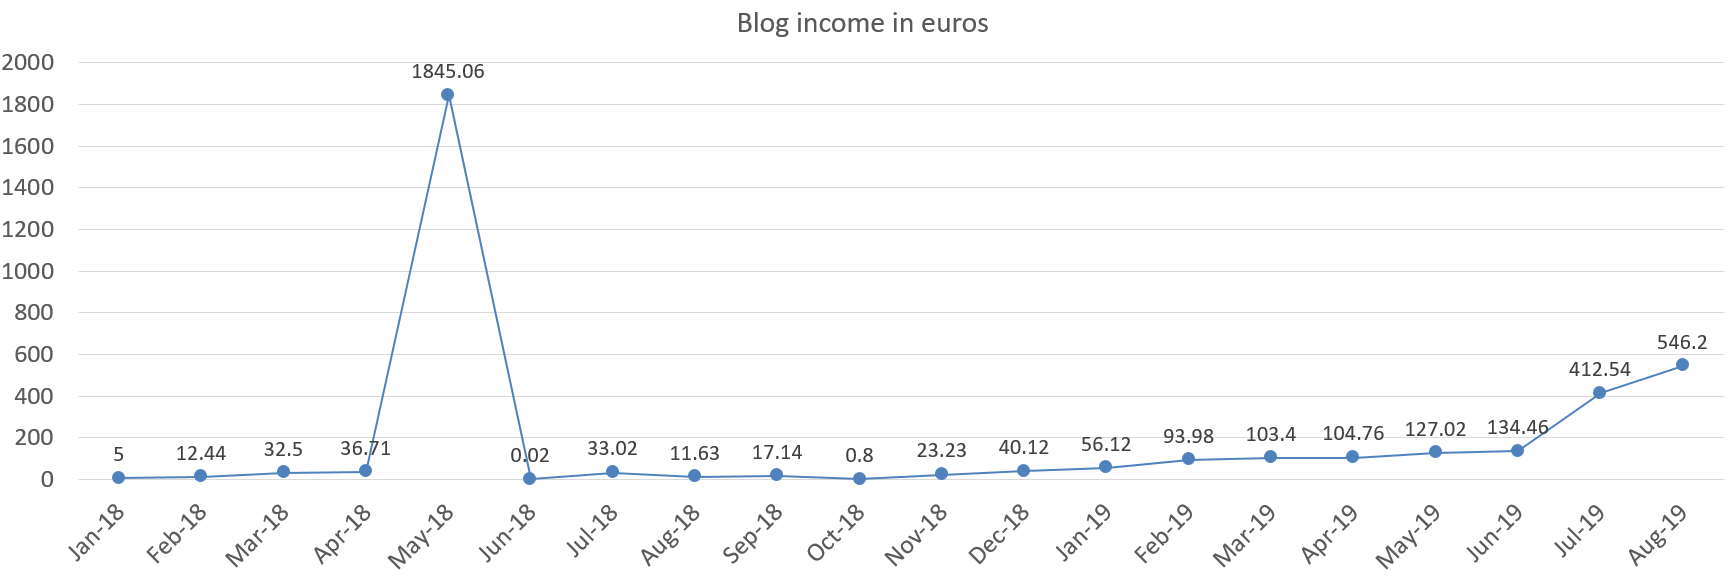 blog income in euros august 2019